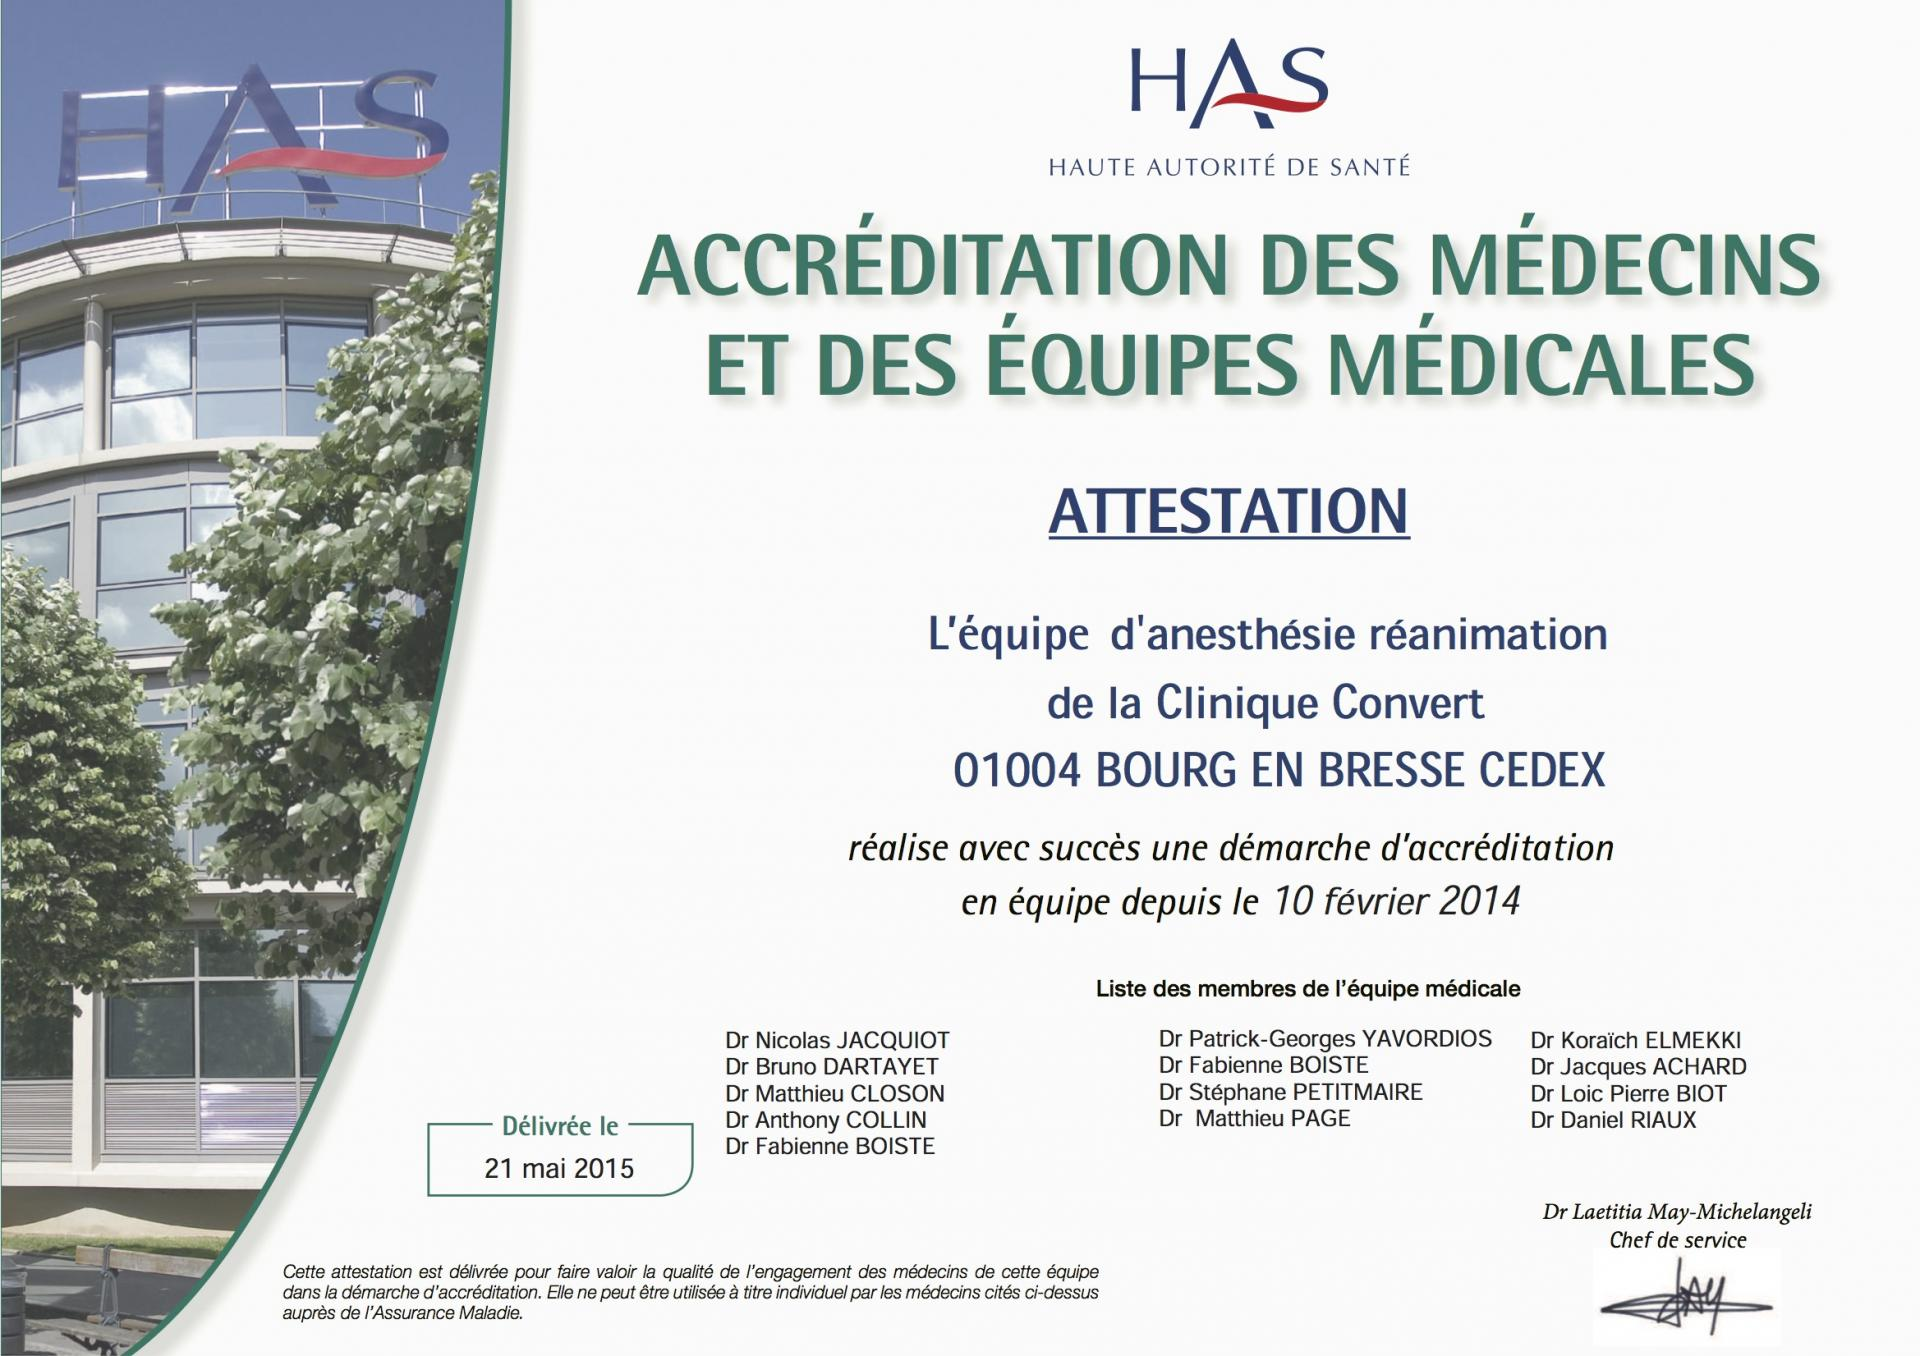 Accreditation certificat